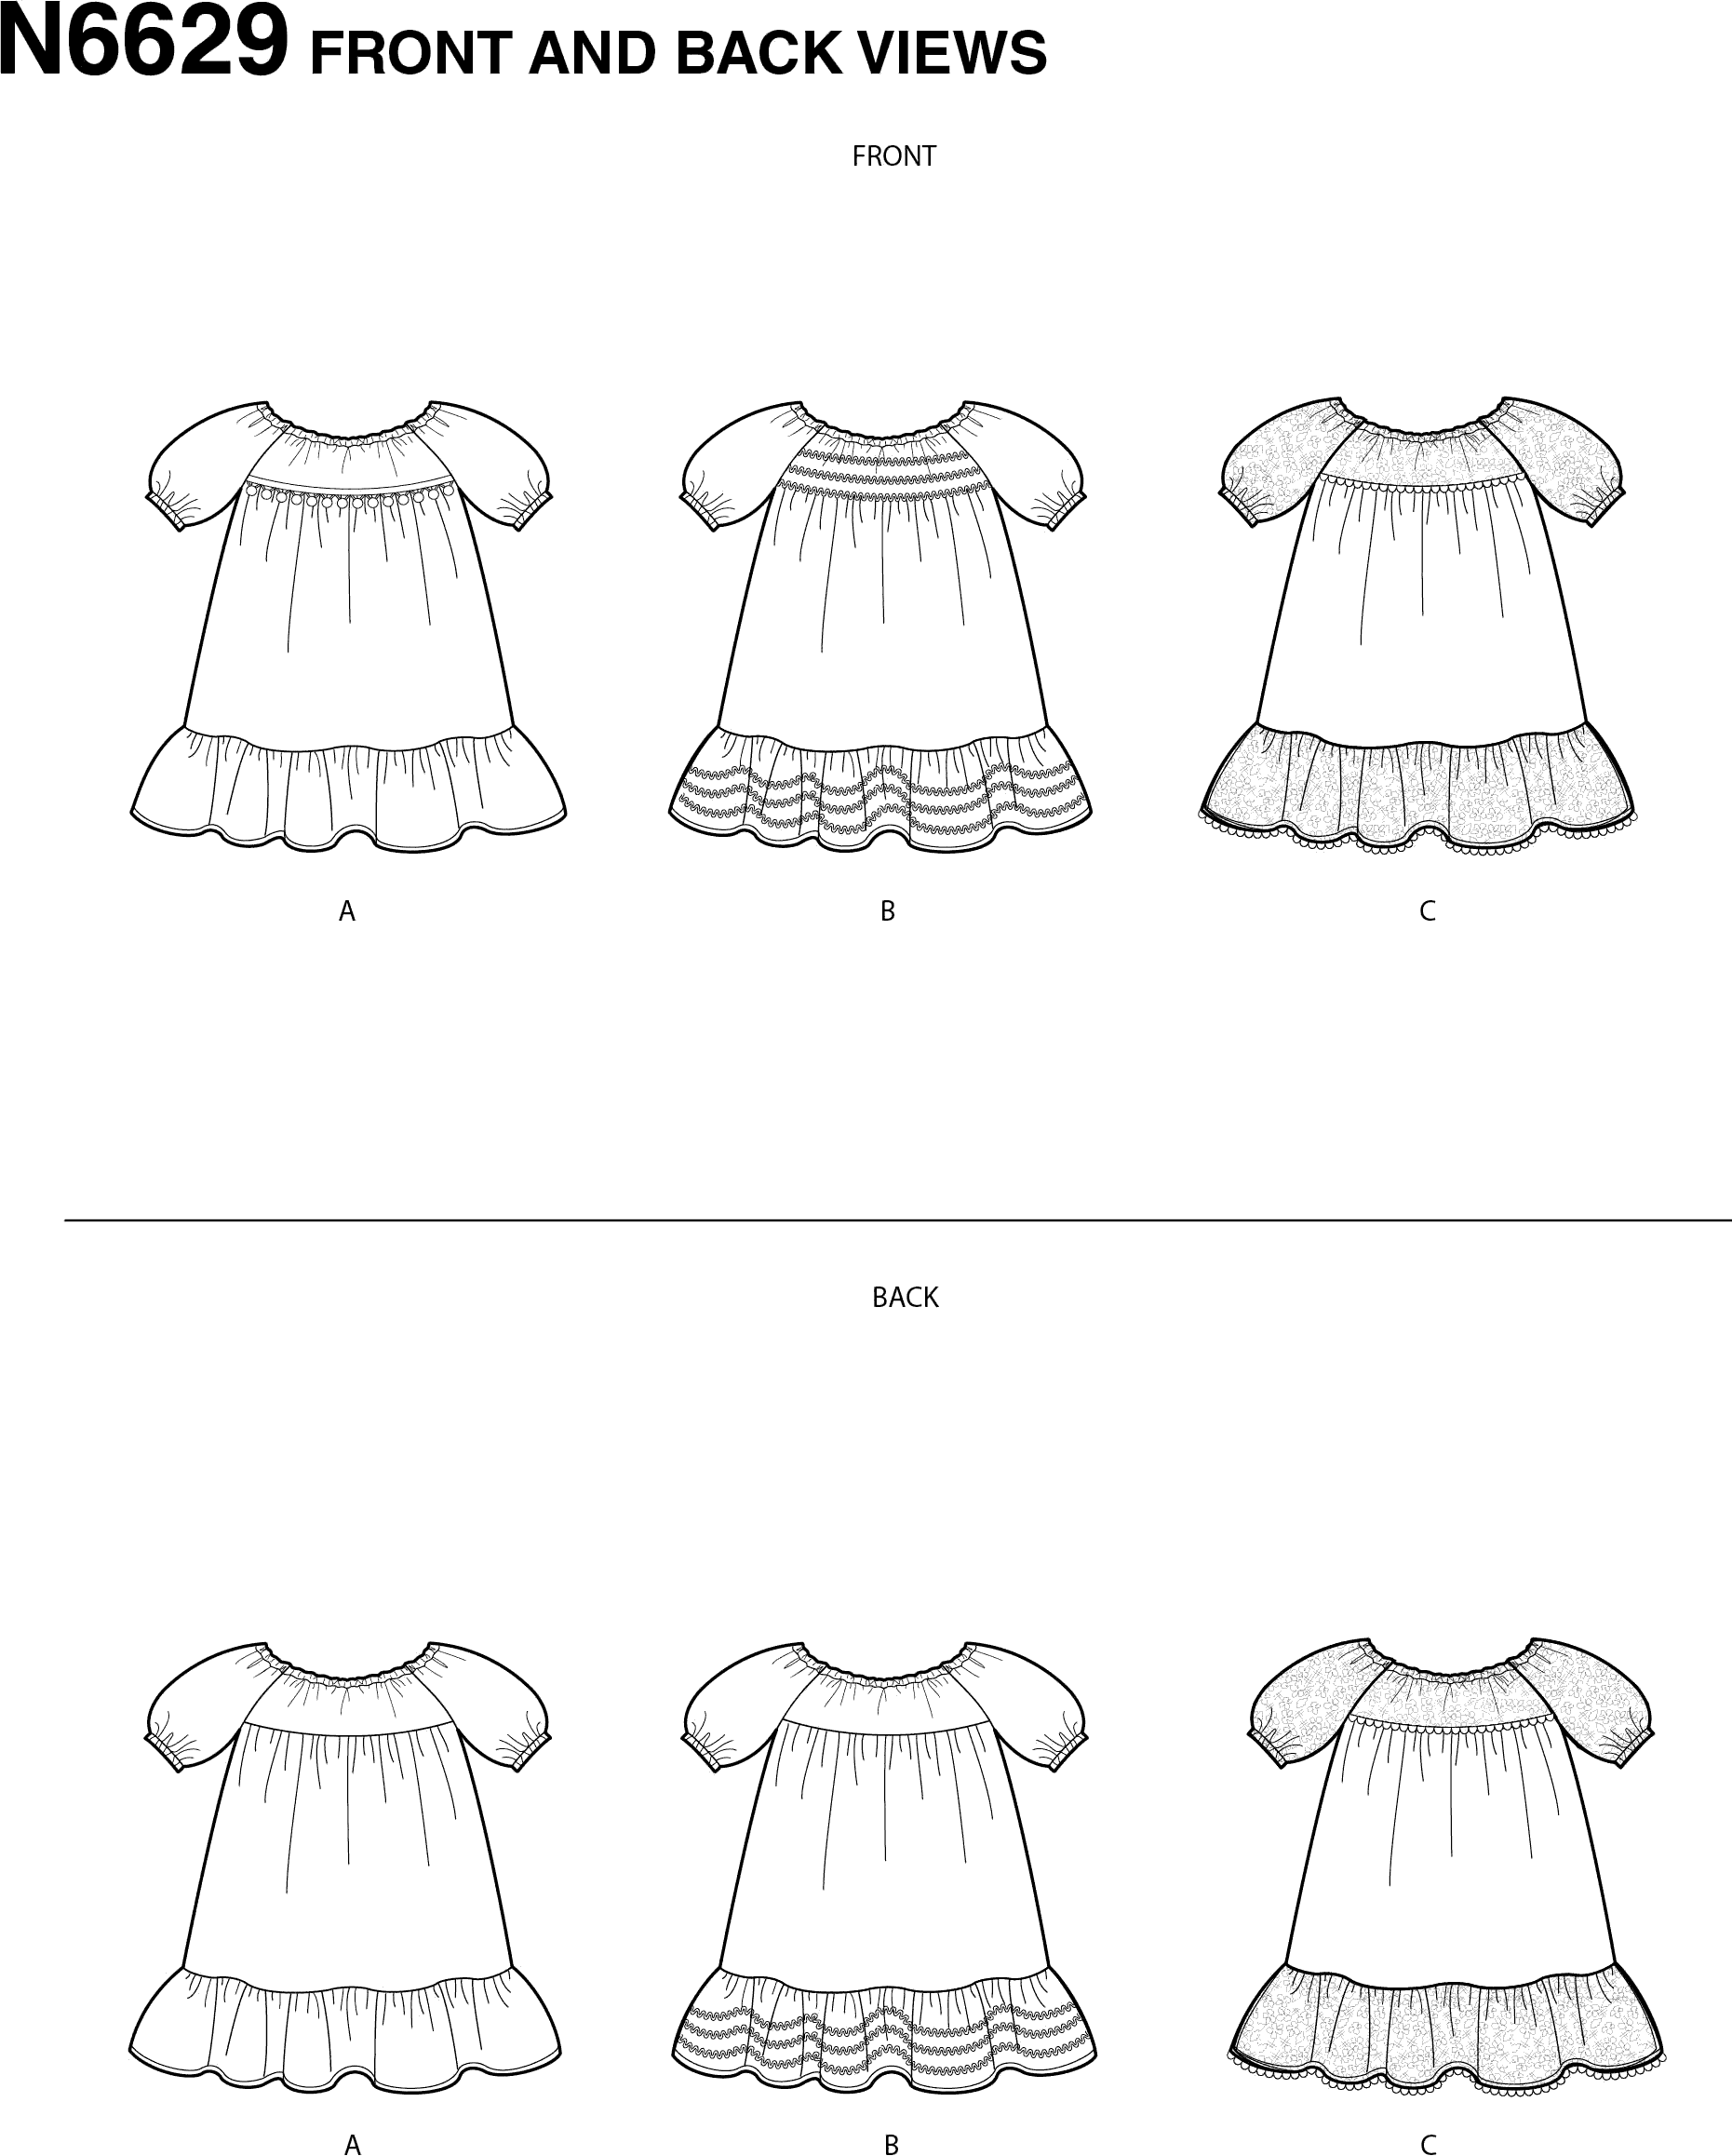 New Look Sewing Pattern N6629 Toddlers Dresses 6629 Line Art From Patternsandplains.com